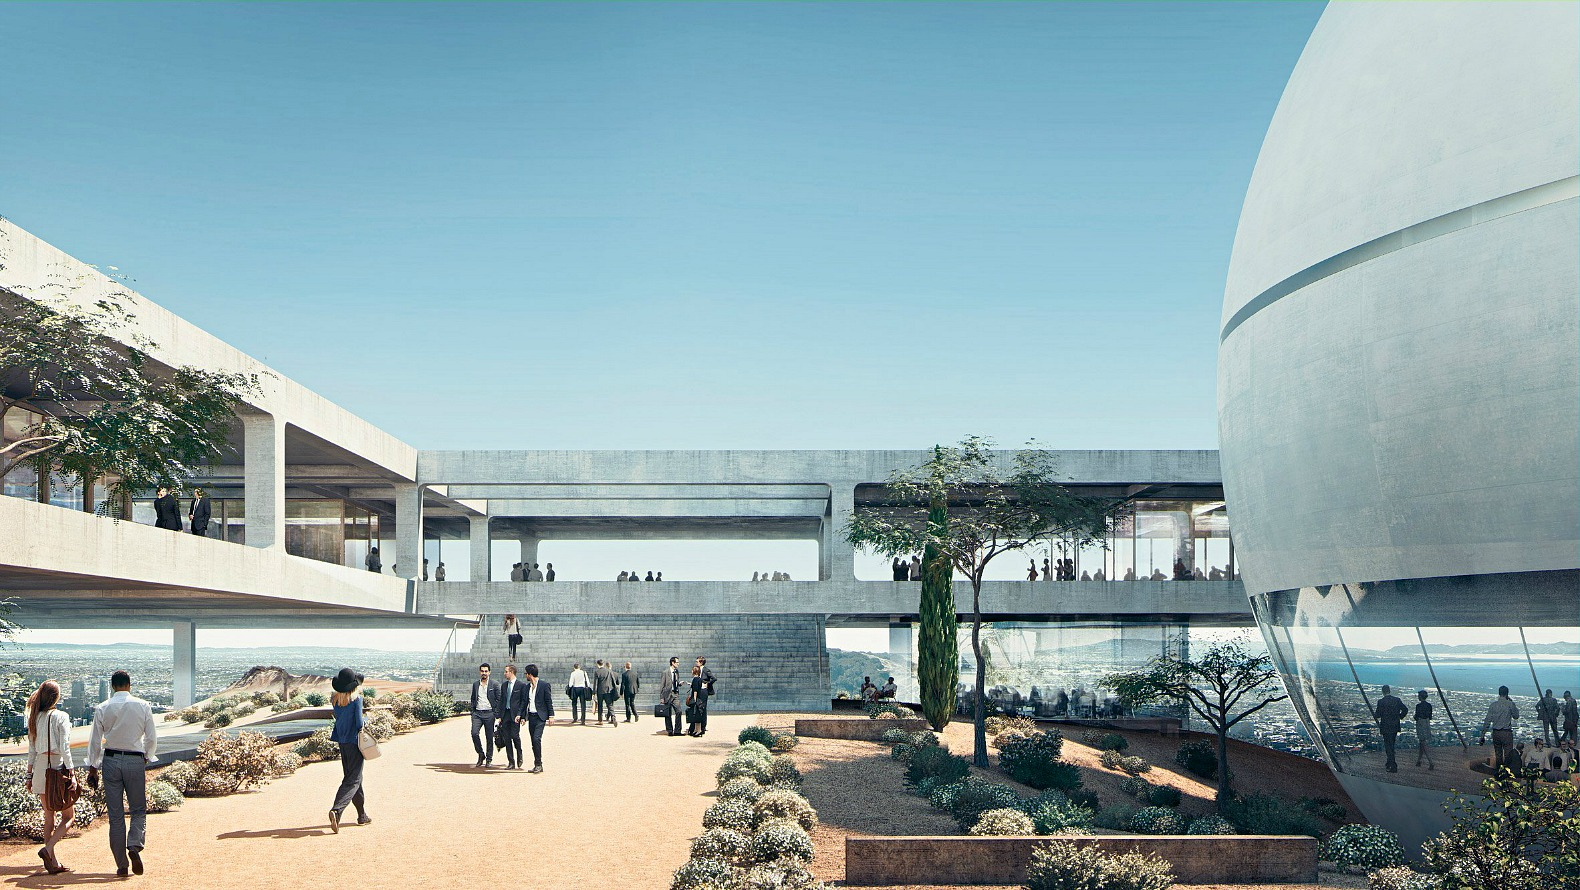 Herzog de meuron unveil monastery inspired campus for for Los angeles architecture